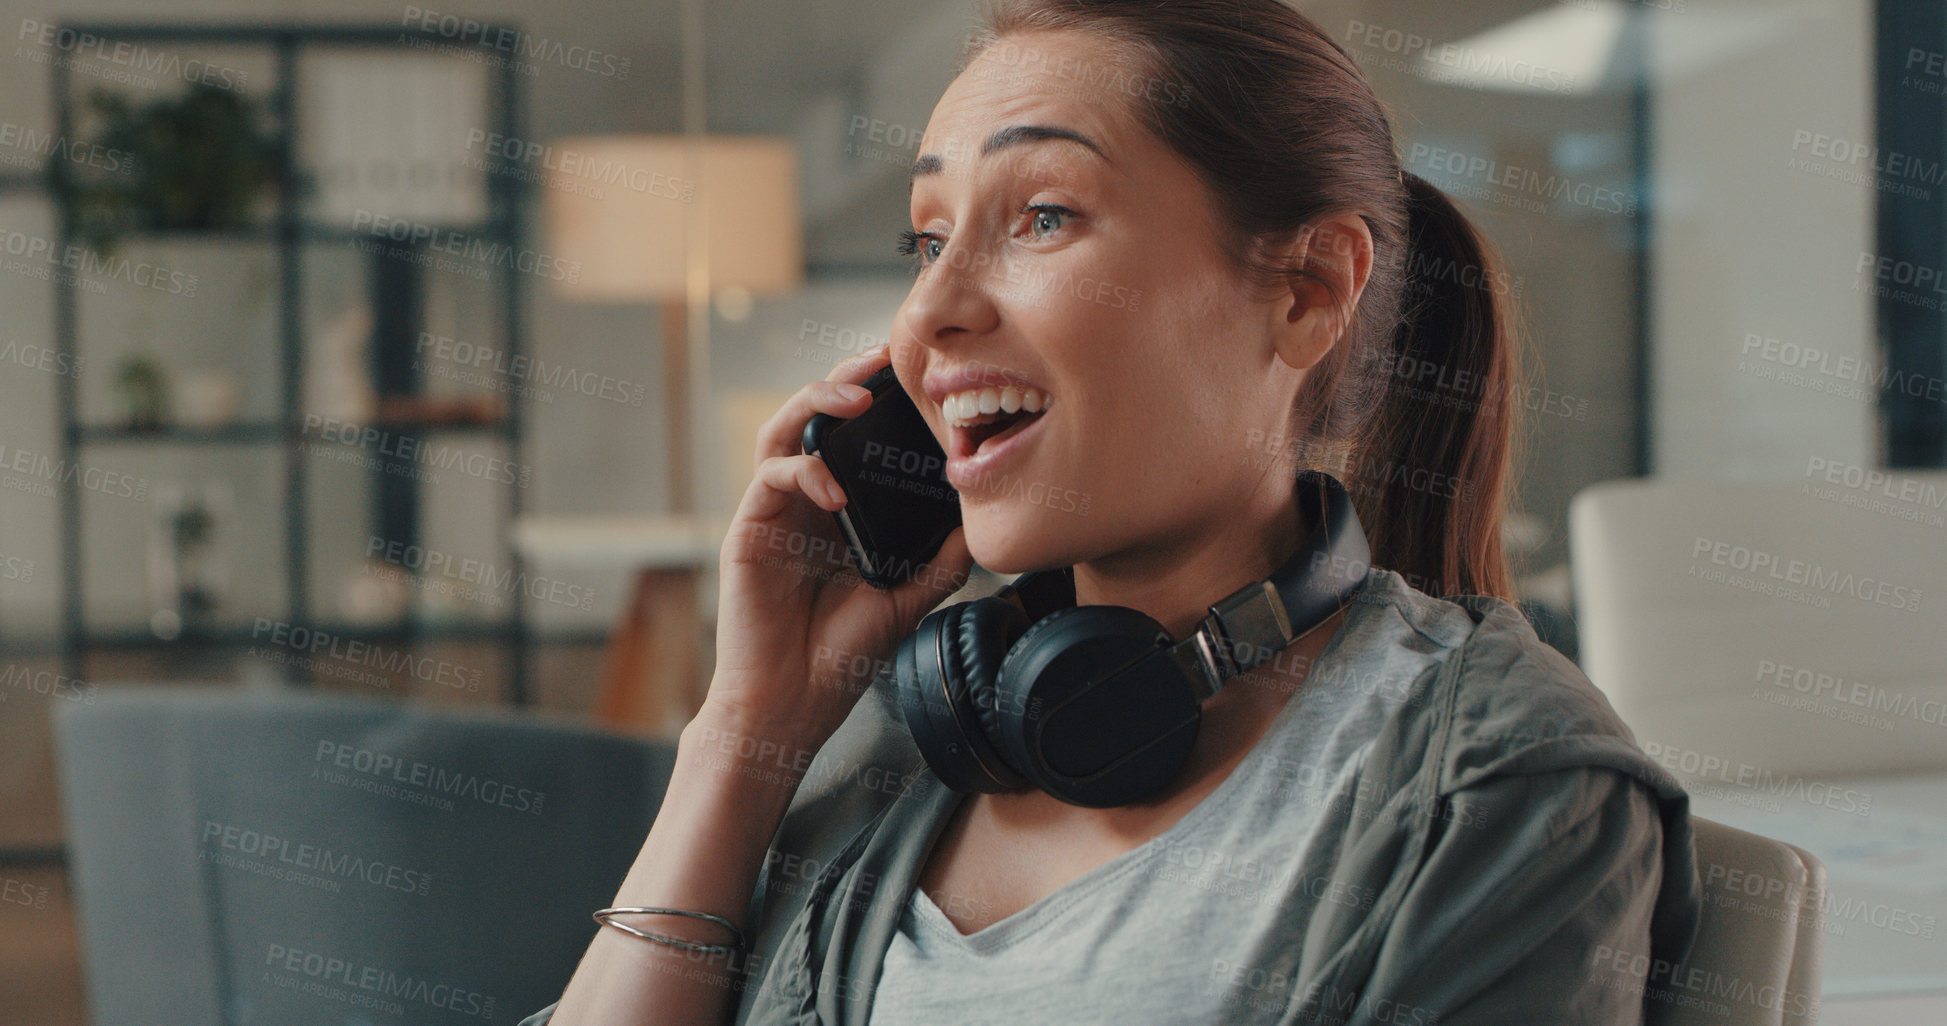 Buy stock photo Shot of a young designer looking surprised while talking on a cellphone in an office